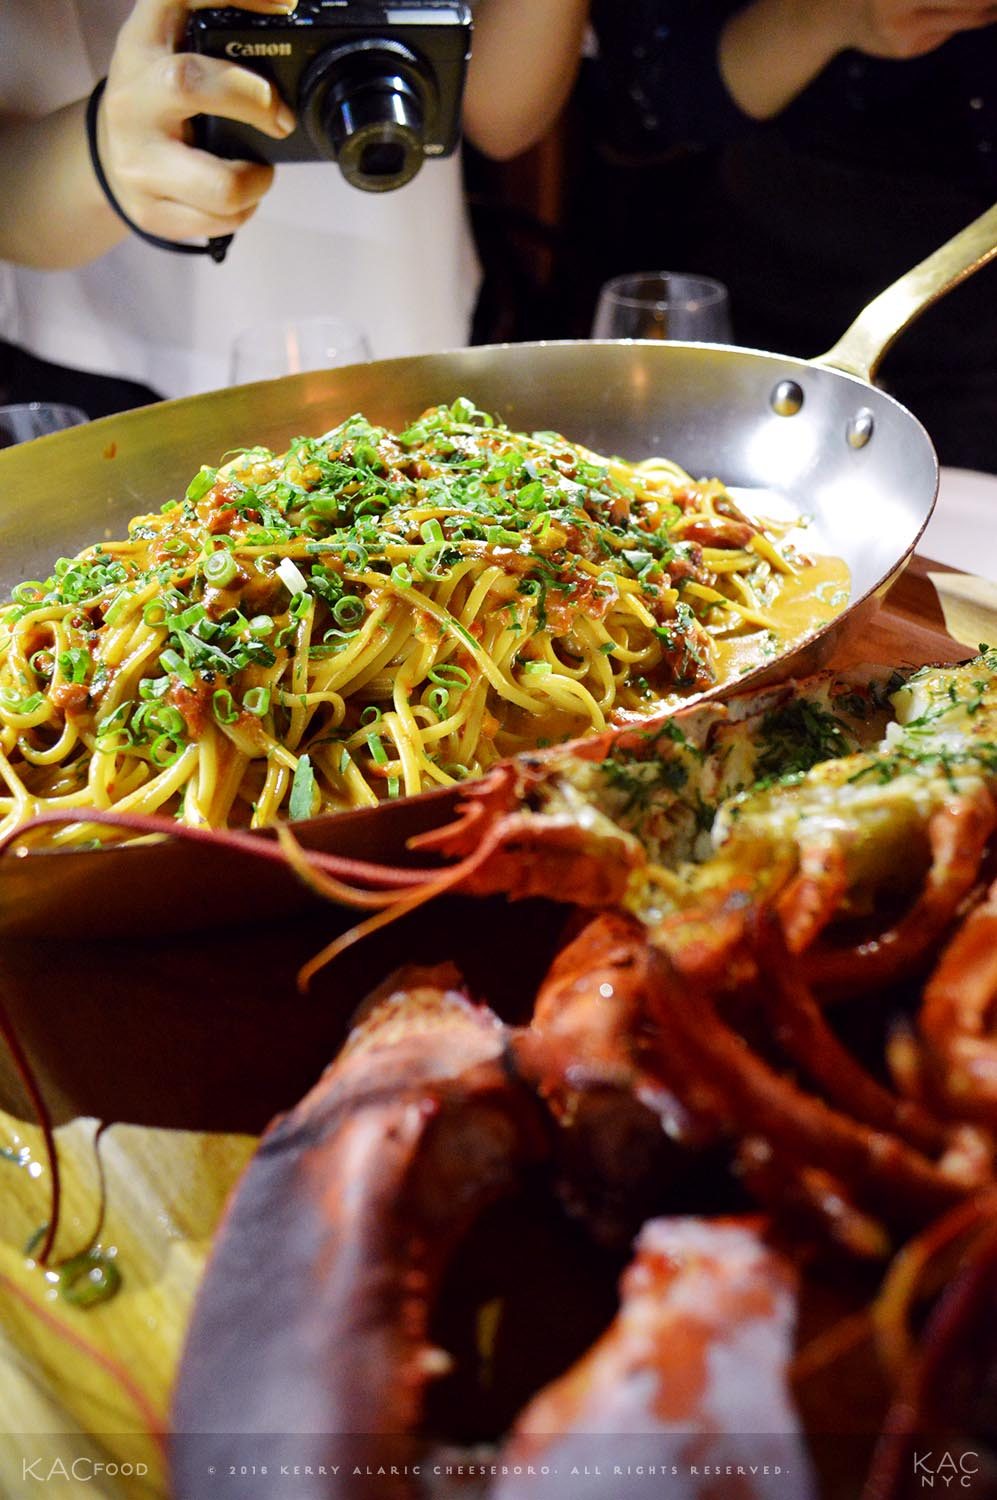 kac_food-160517-bagatelle-lobster-linguini-concasse-2-1500.jpg